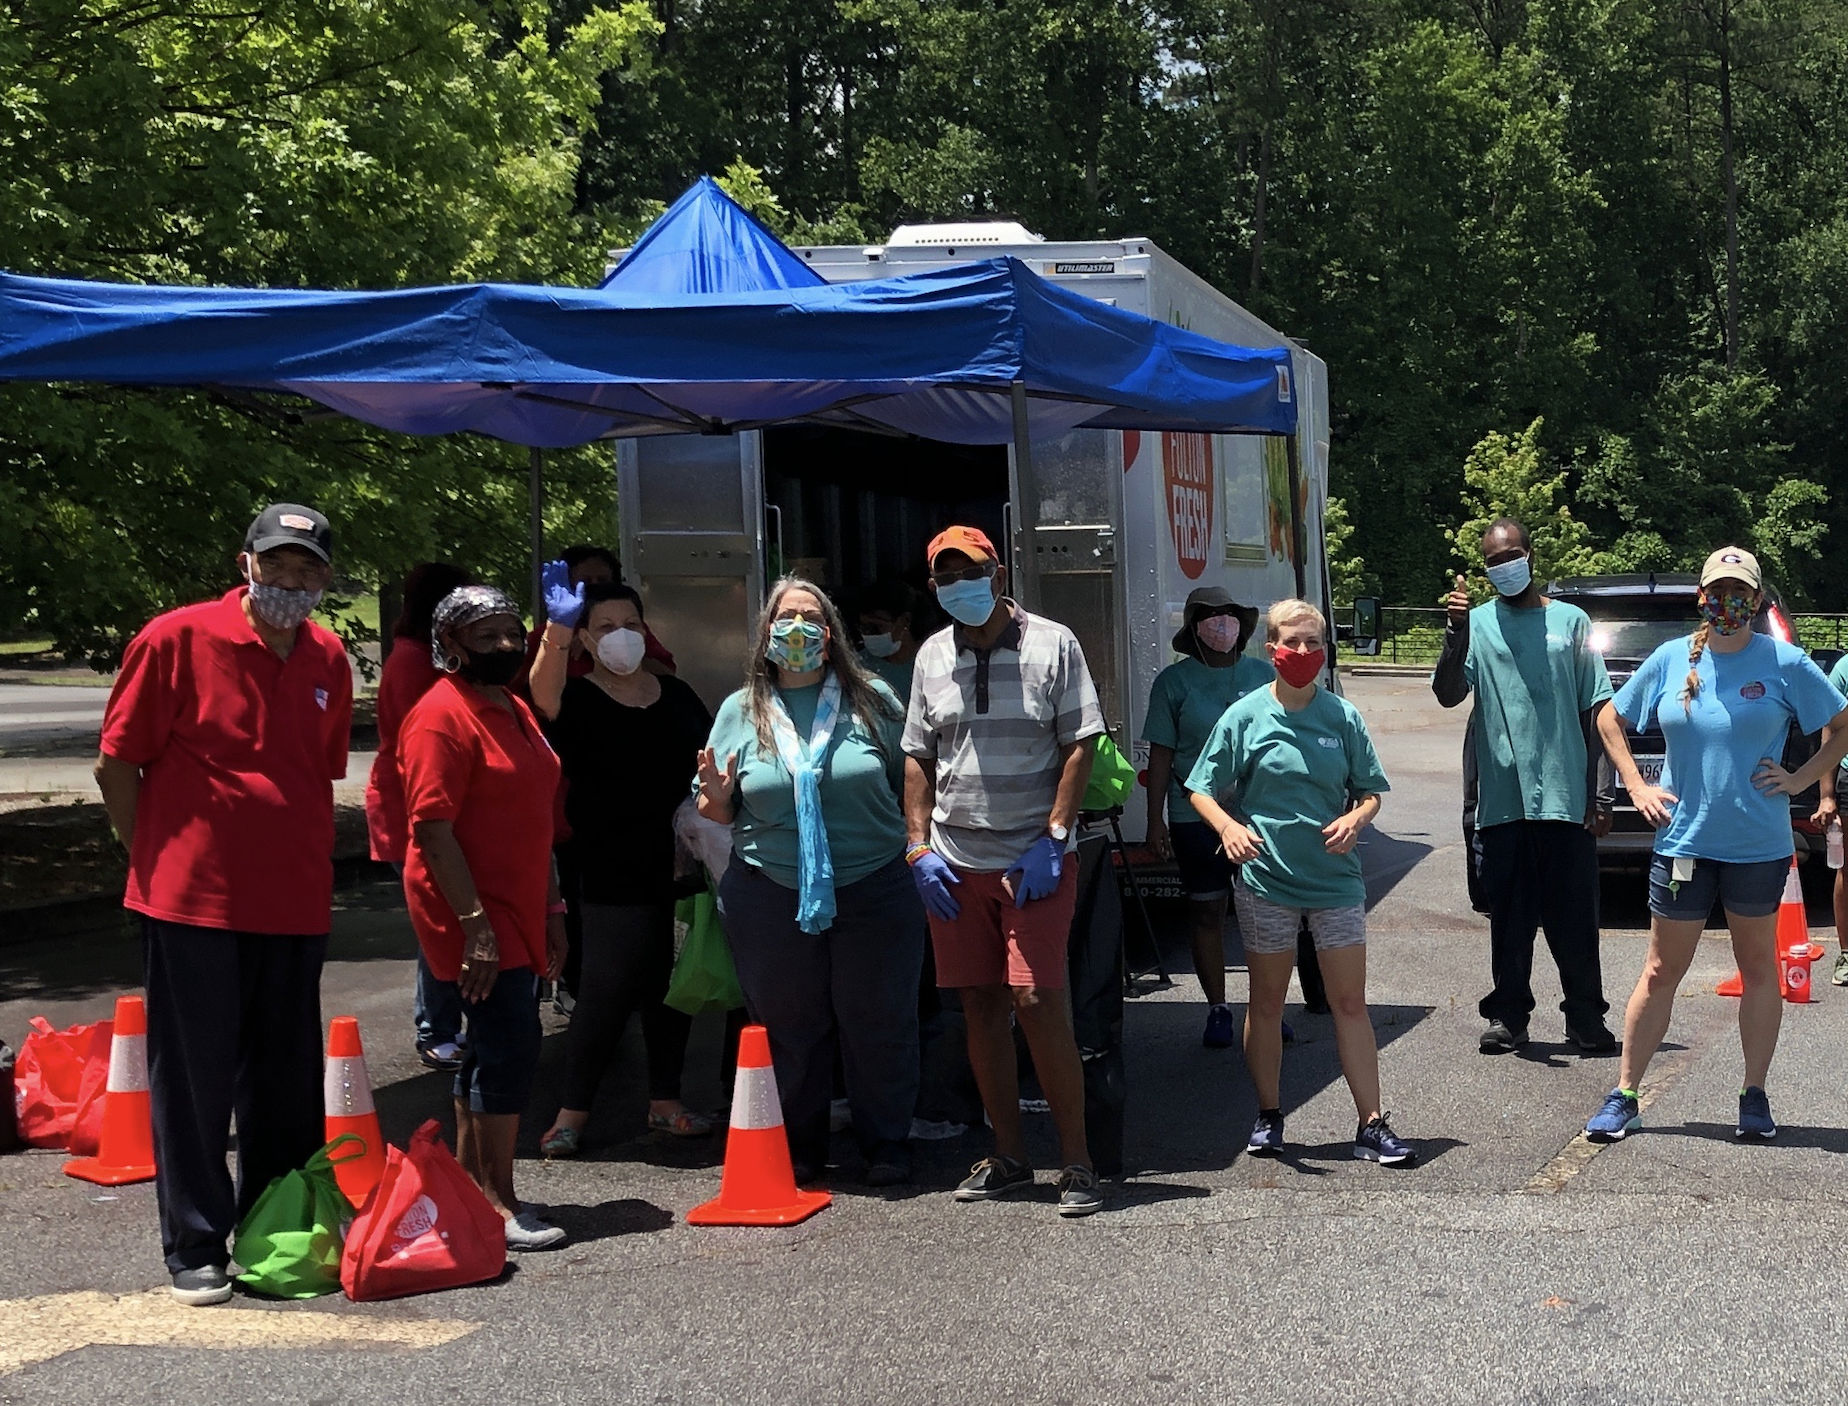 Fulton County Extension staff and volunteers prepare to distribute produce bags through curbside pickup at a Fulton Fresh mobile market stop in Atlanta. (Photo by Molly Woo)